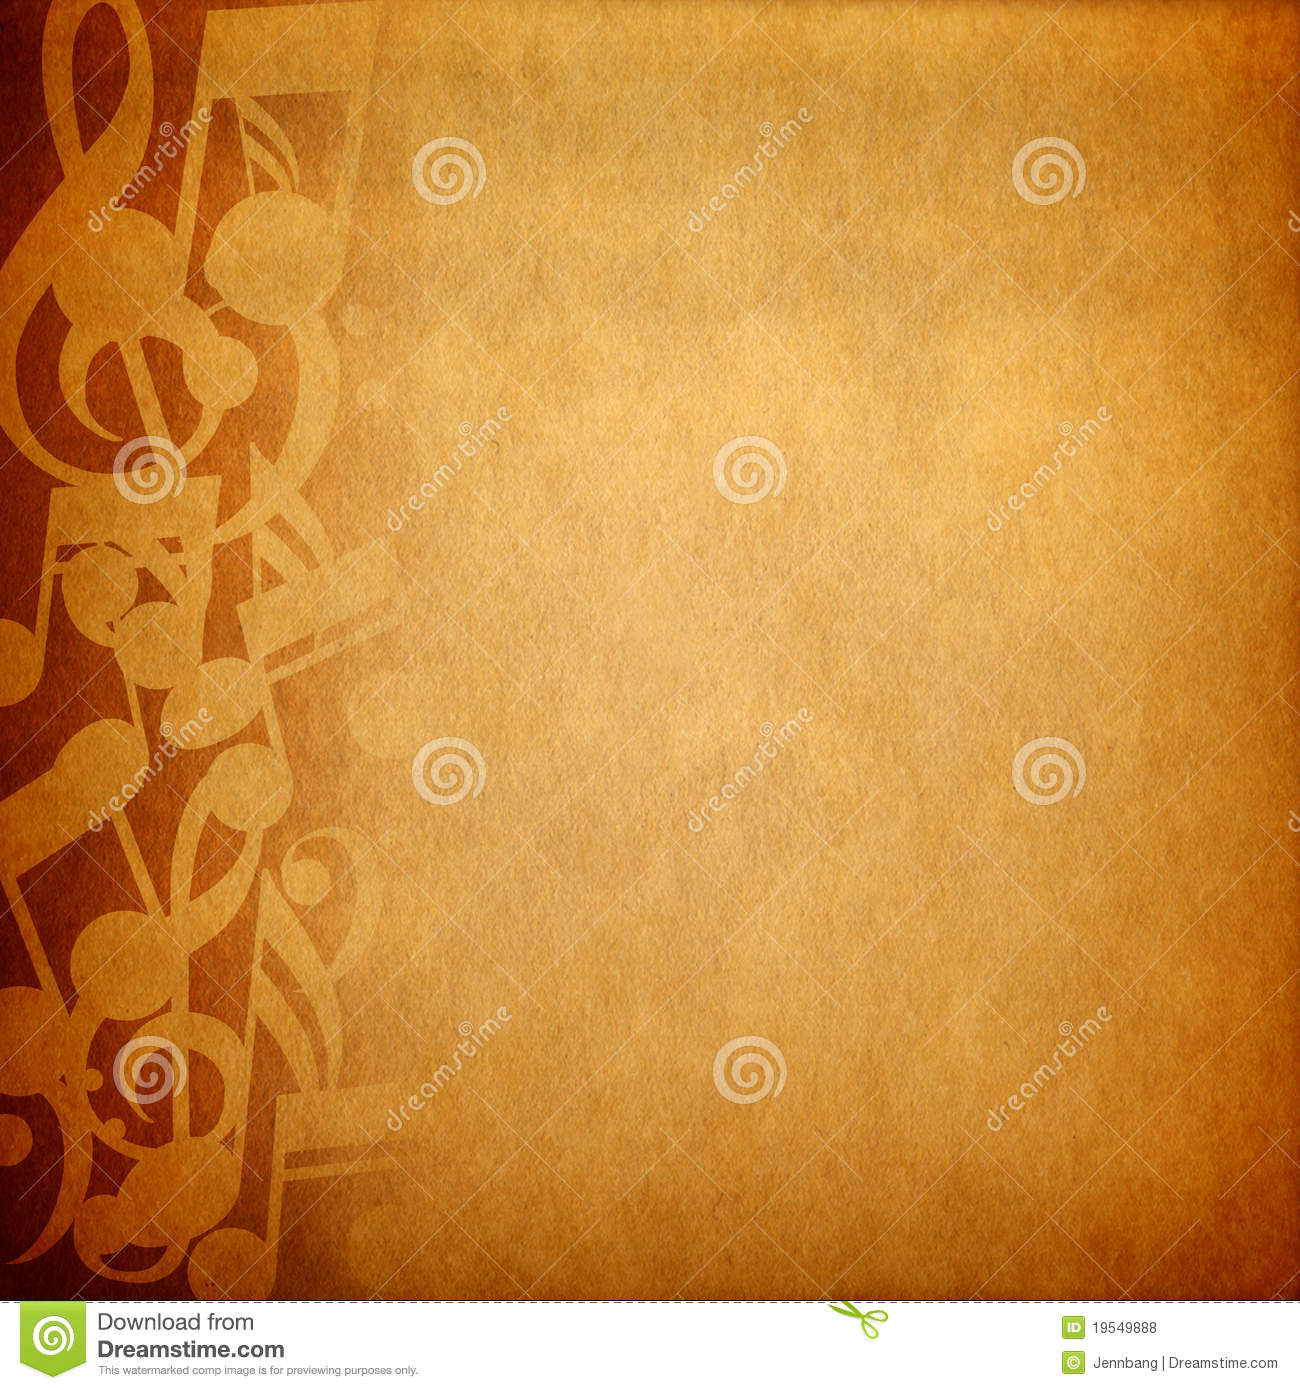 Classical Music Background Designs 3